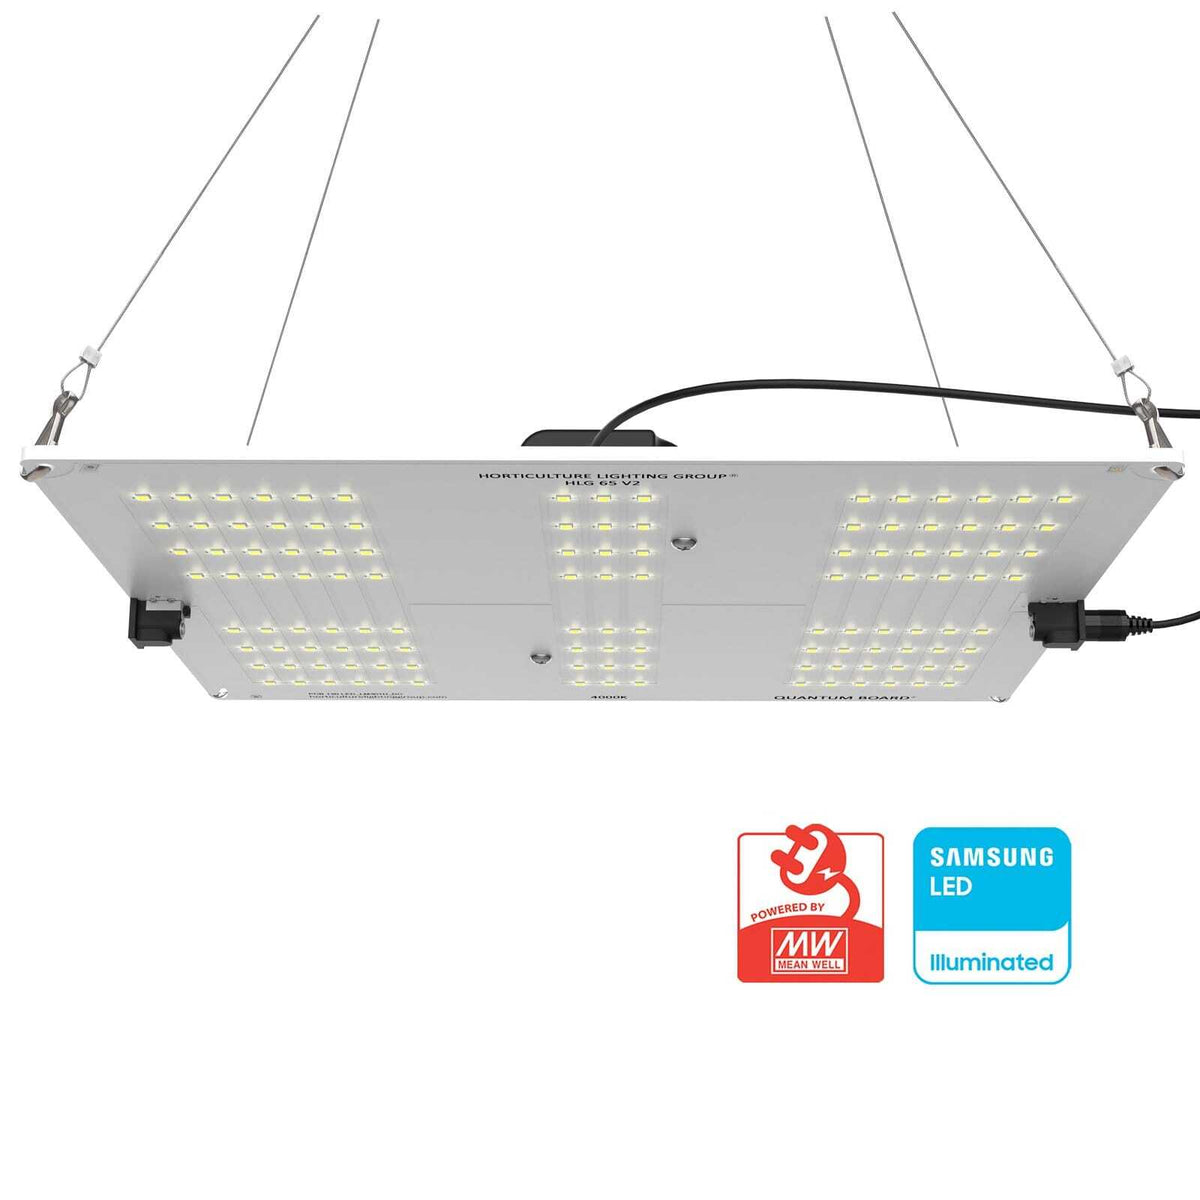 Horticulture Lighting Group HLG 65 V2 LED Grow Light